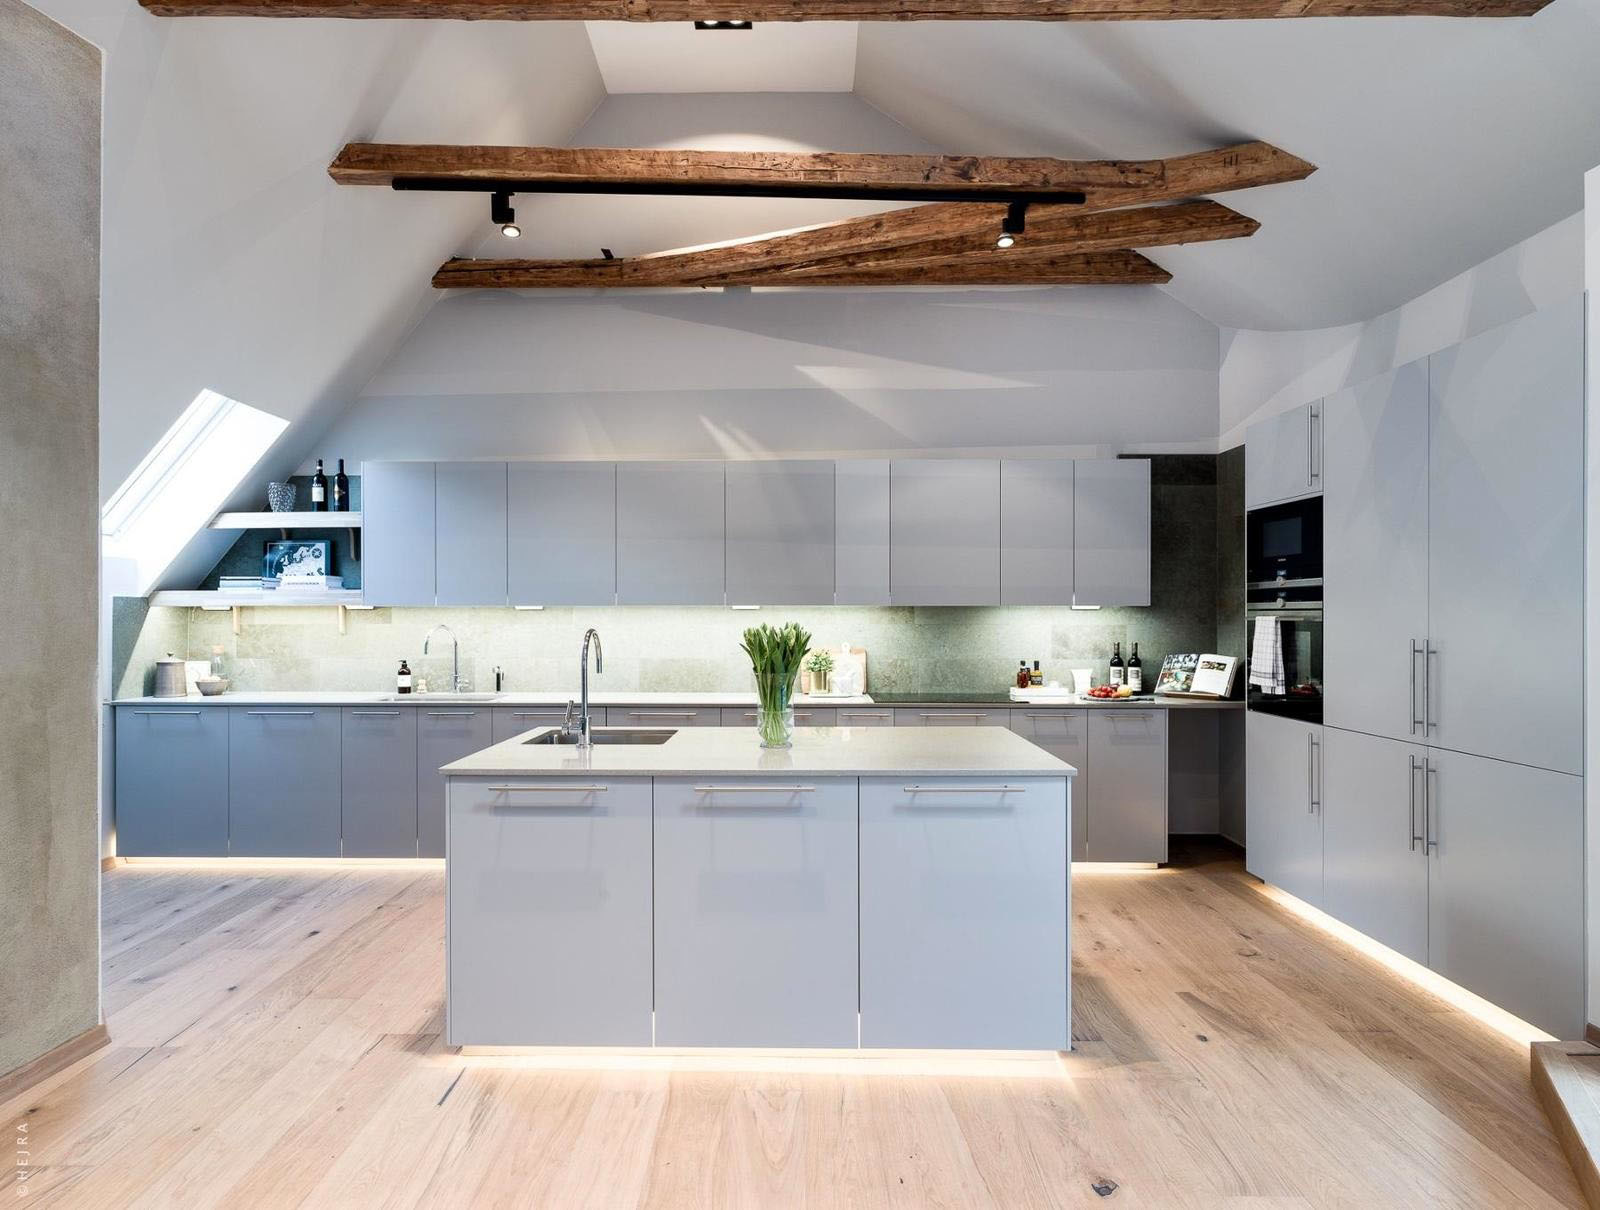 Modern scandinavian kitchen with wood beams